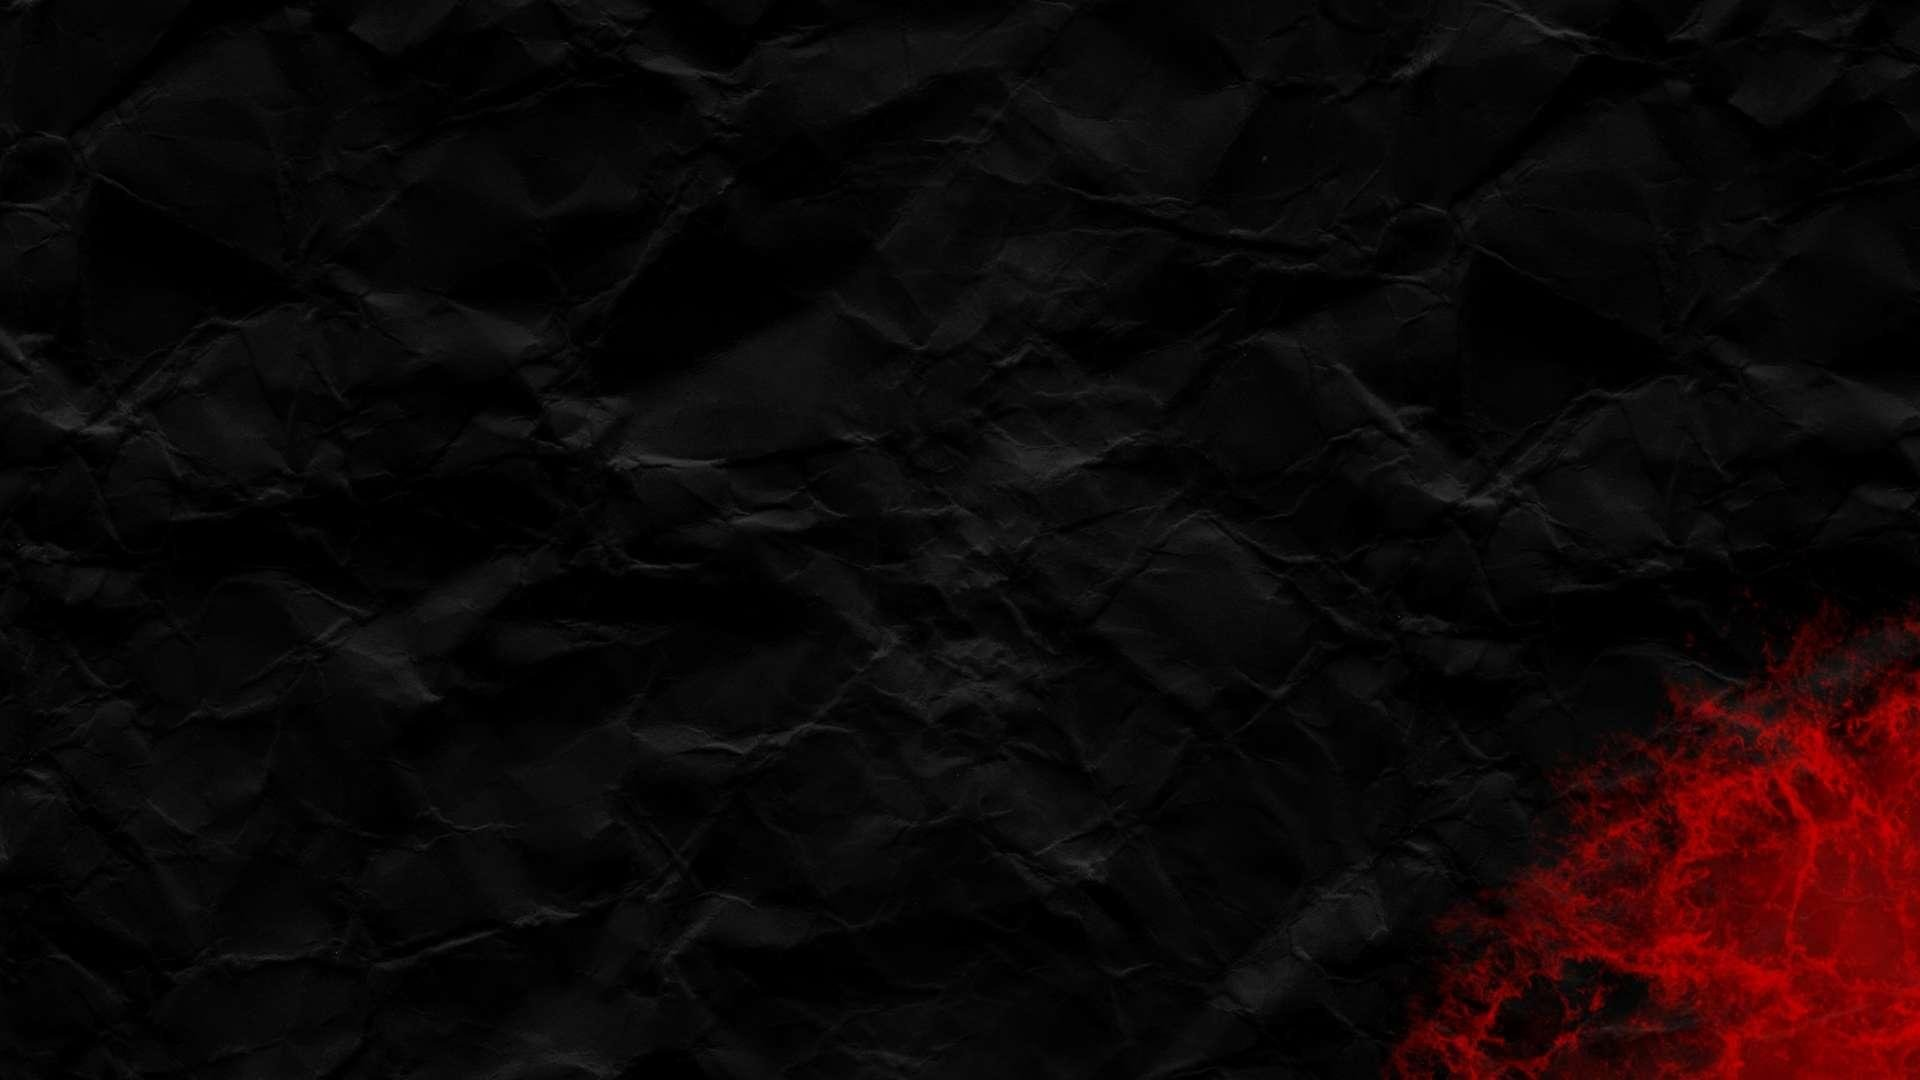 1920x1080 Download Wallpaper  Red, Black, Abstract Full HD 1080p HD .